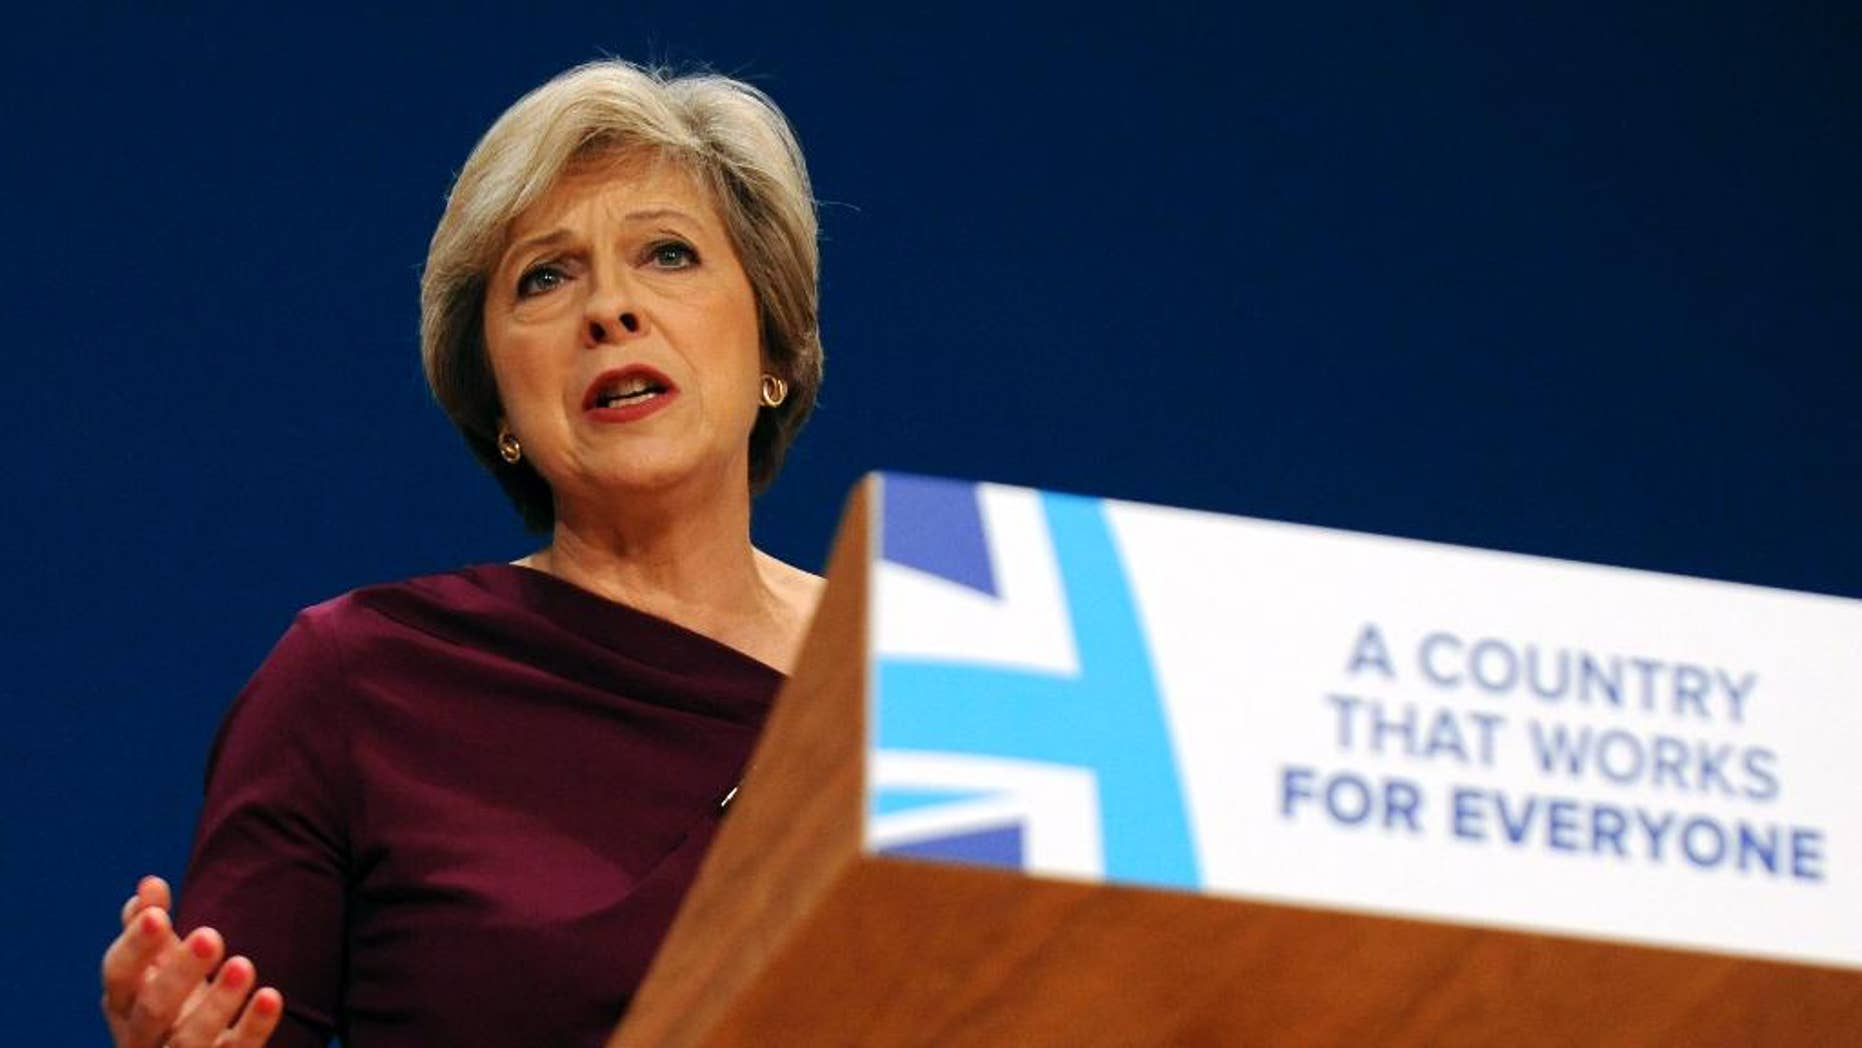 FILE - In this Wednesday, Oct. 5, 2016 file photo, Conservative Party Leader and Prime Minister Theresa May addresses delegates at the Conservative Party Conference at the ICC, in Birmingham, England. The pound has dropped more than 5 percent against the dollar since Oct. 2, when Prime Minister Theresa May announced plans to start formal talks on exiting the European Union by the end of March.  (AP Photo/Rui Vieira, file)